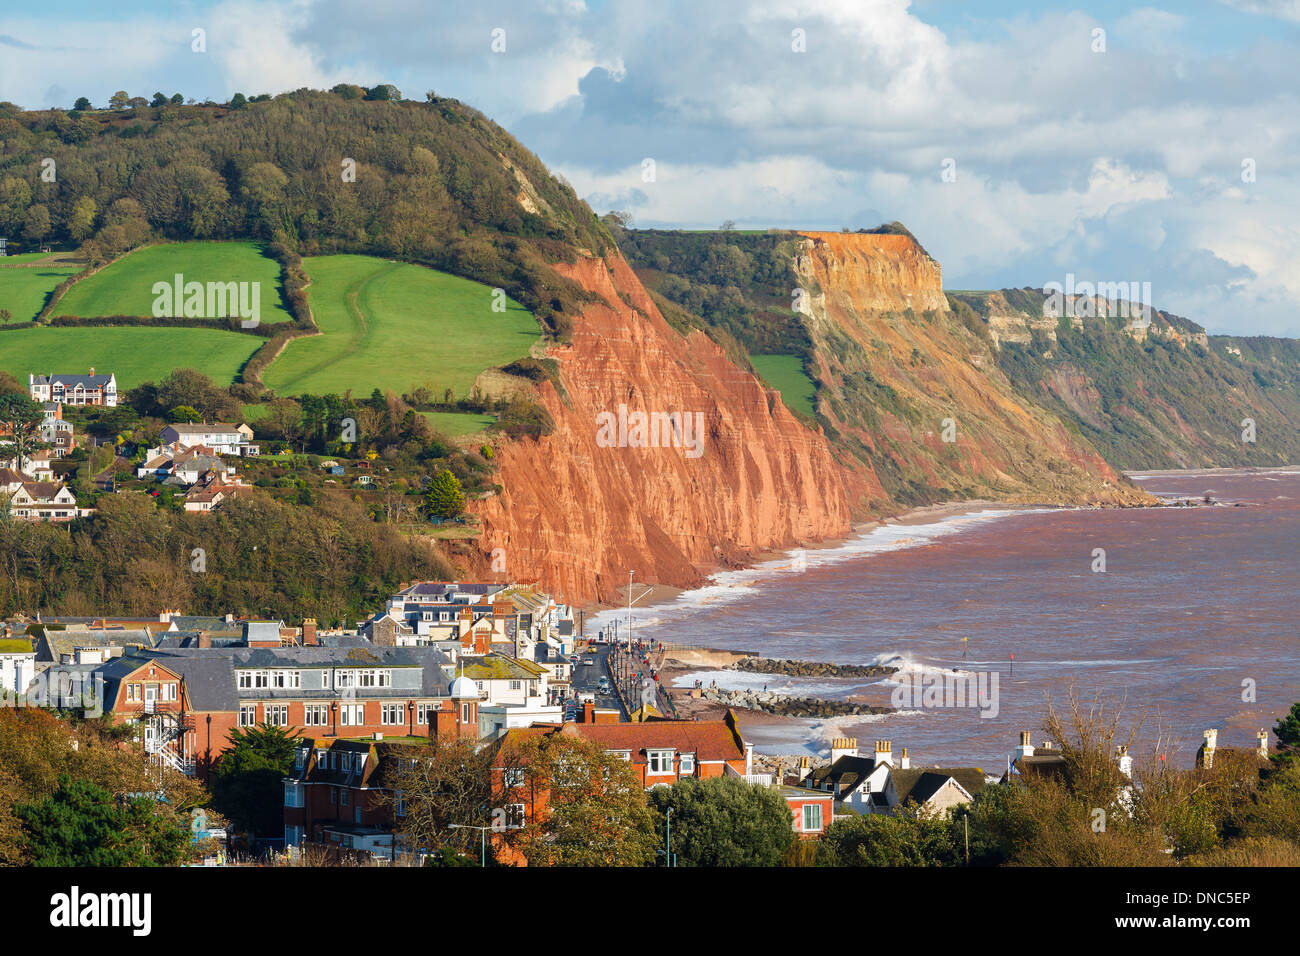 View down on to Sidmouth Devon England UK Europe - Stock Image